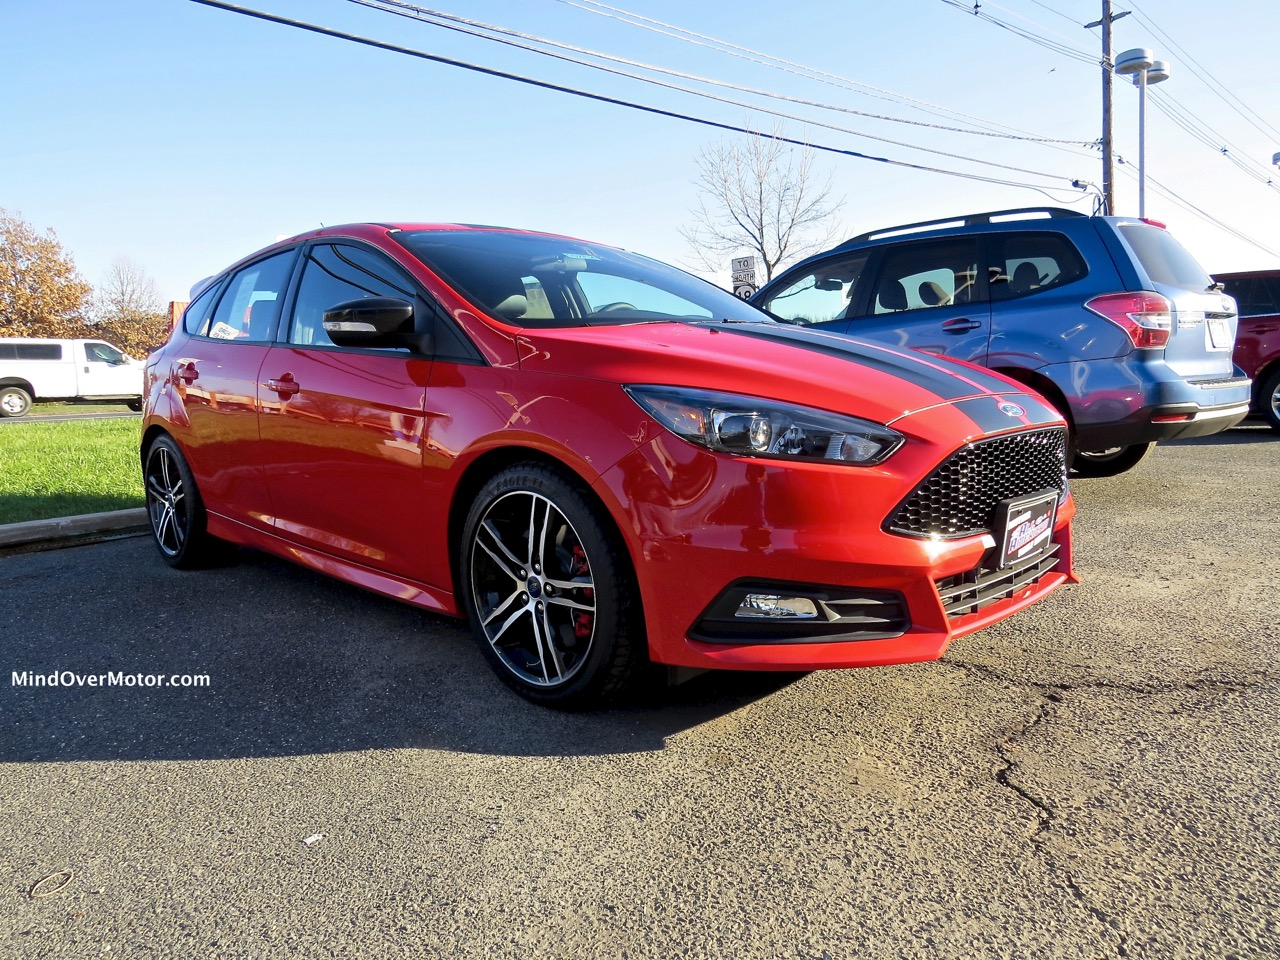 Ford Focus ST Front 2